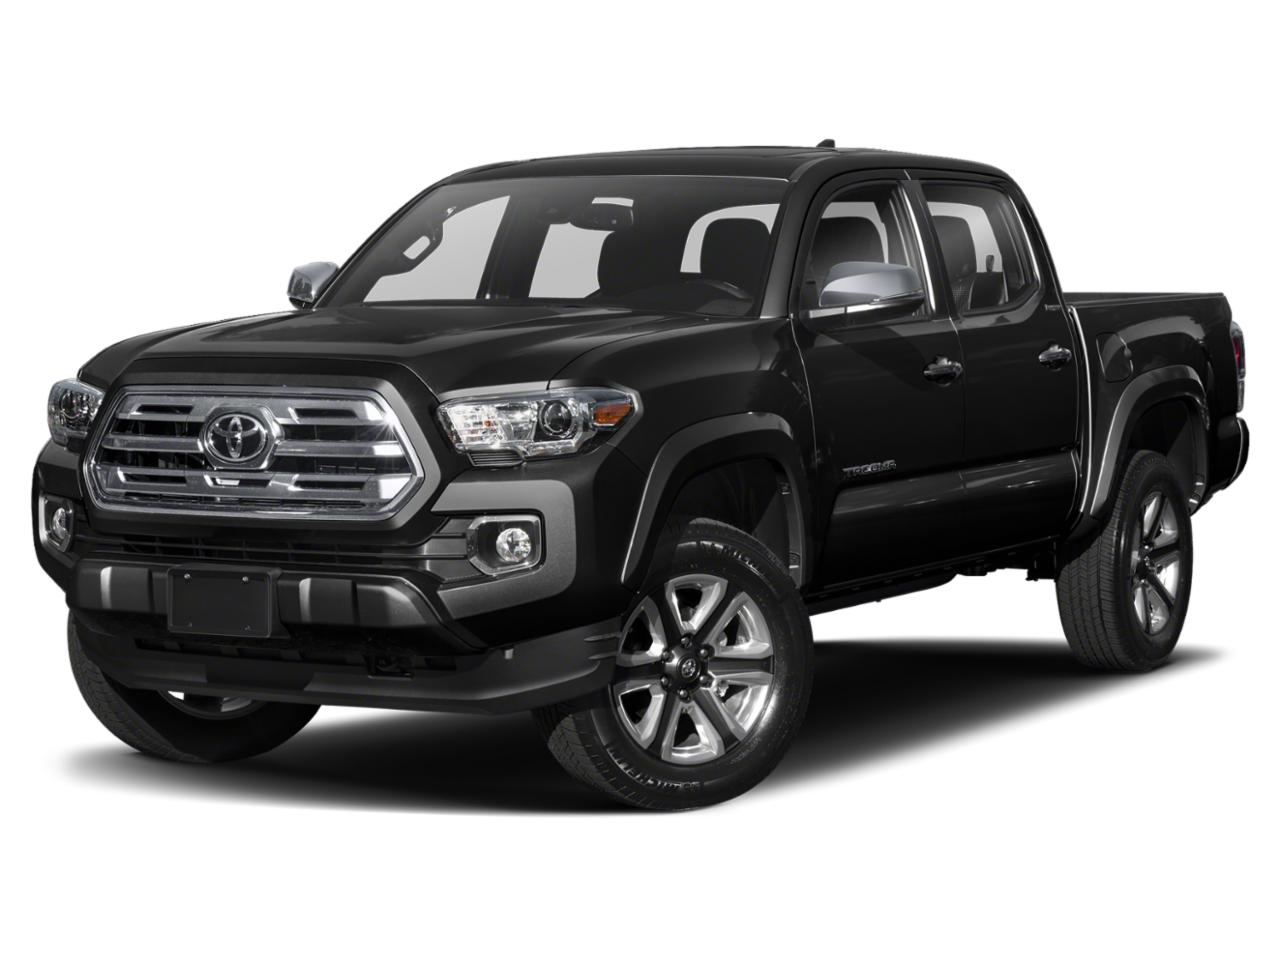 2019 Toyota Tacoma 4WD Vehicle Photo in Plainfield, IL 60586